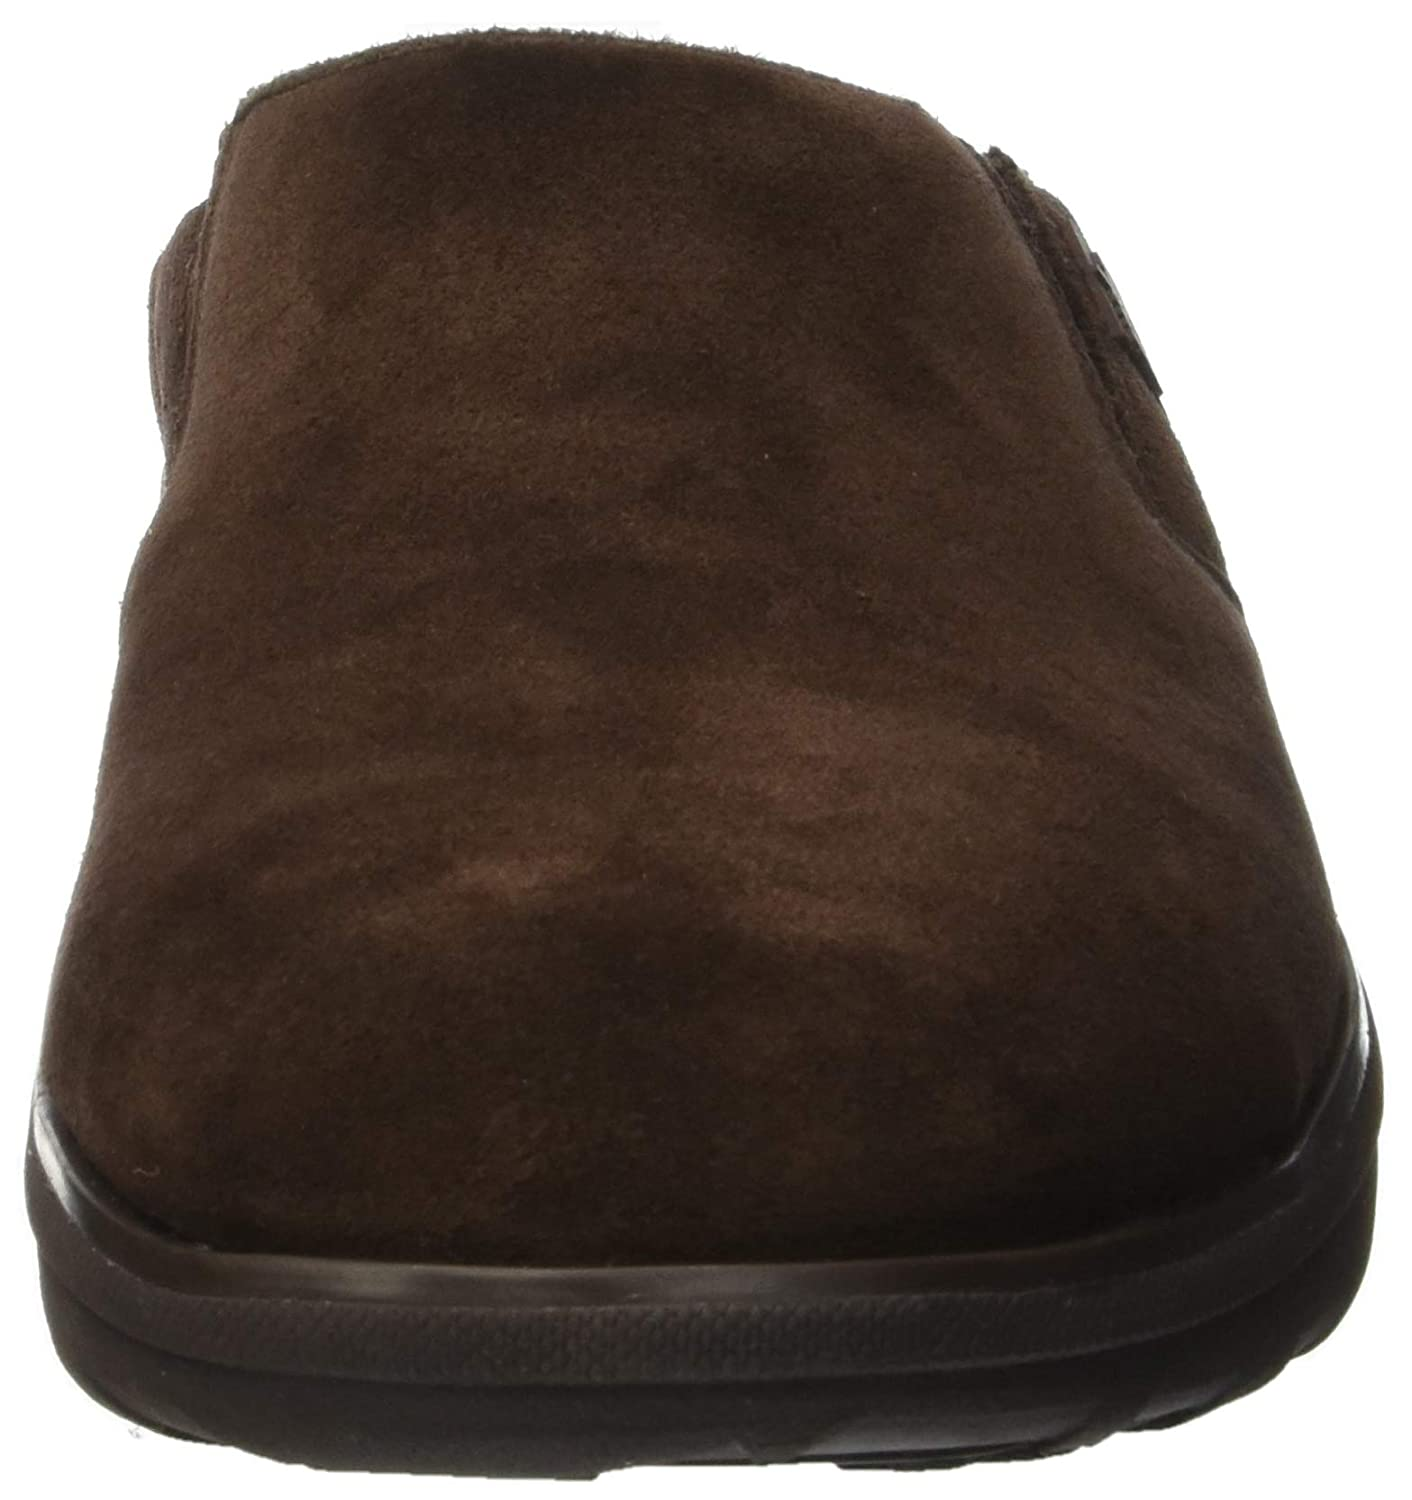 bd3723c2f Fitflop Women s Loaff Suede Clog Slip On Trainers  Amazon.co.uk  Shoes    Bags